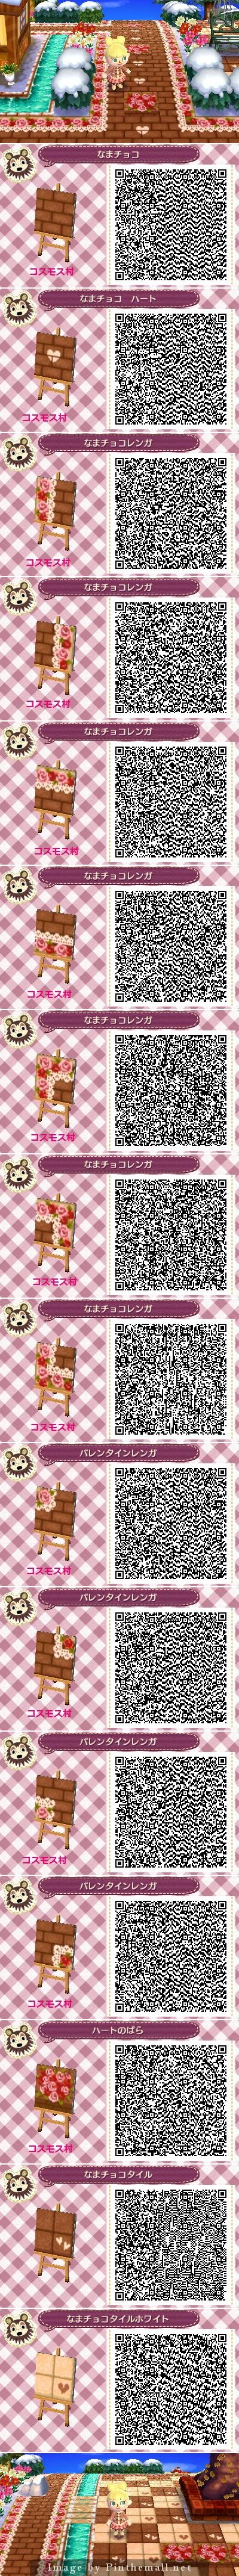 Chocolate rose bricked pathway QR codes